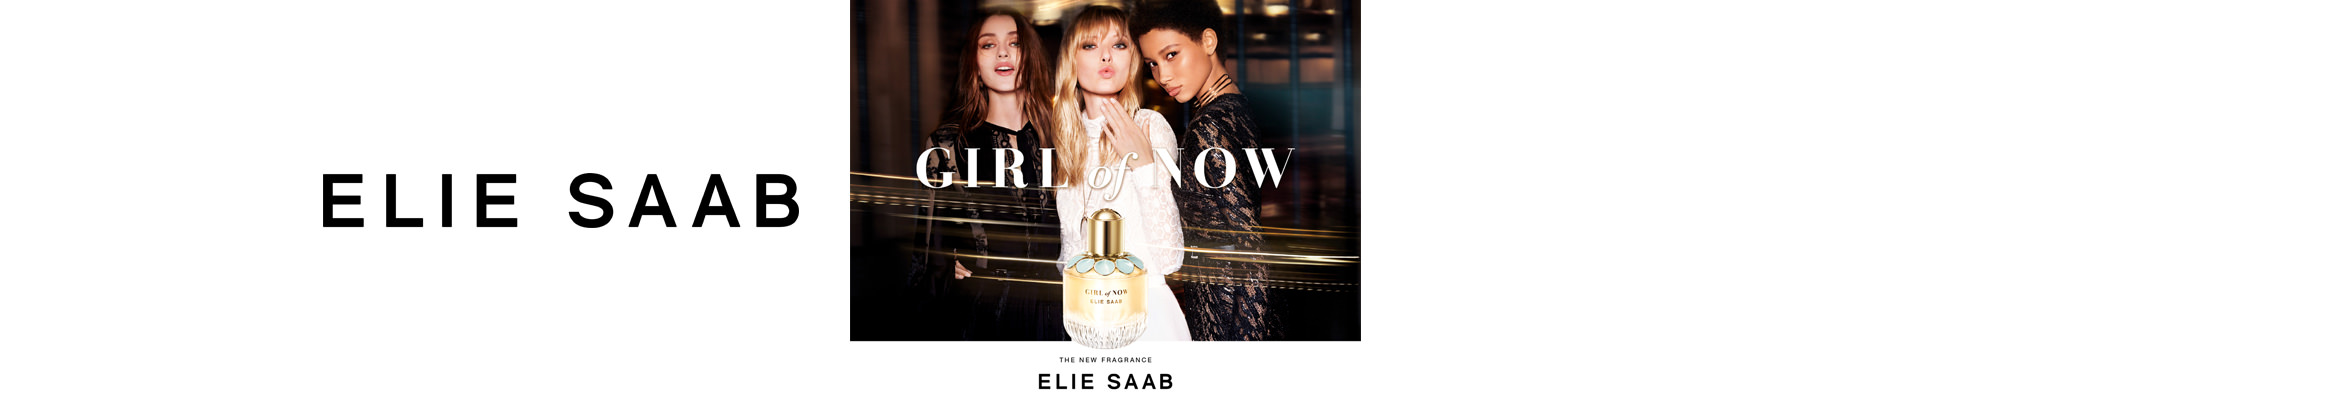 Elie-Saab-brandwall---NEW